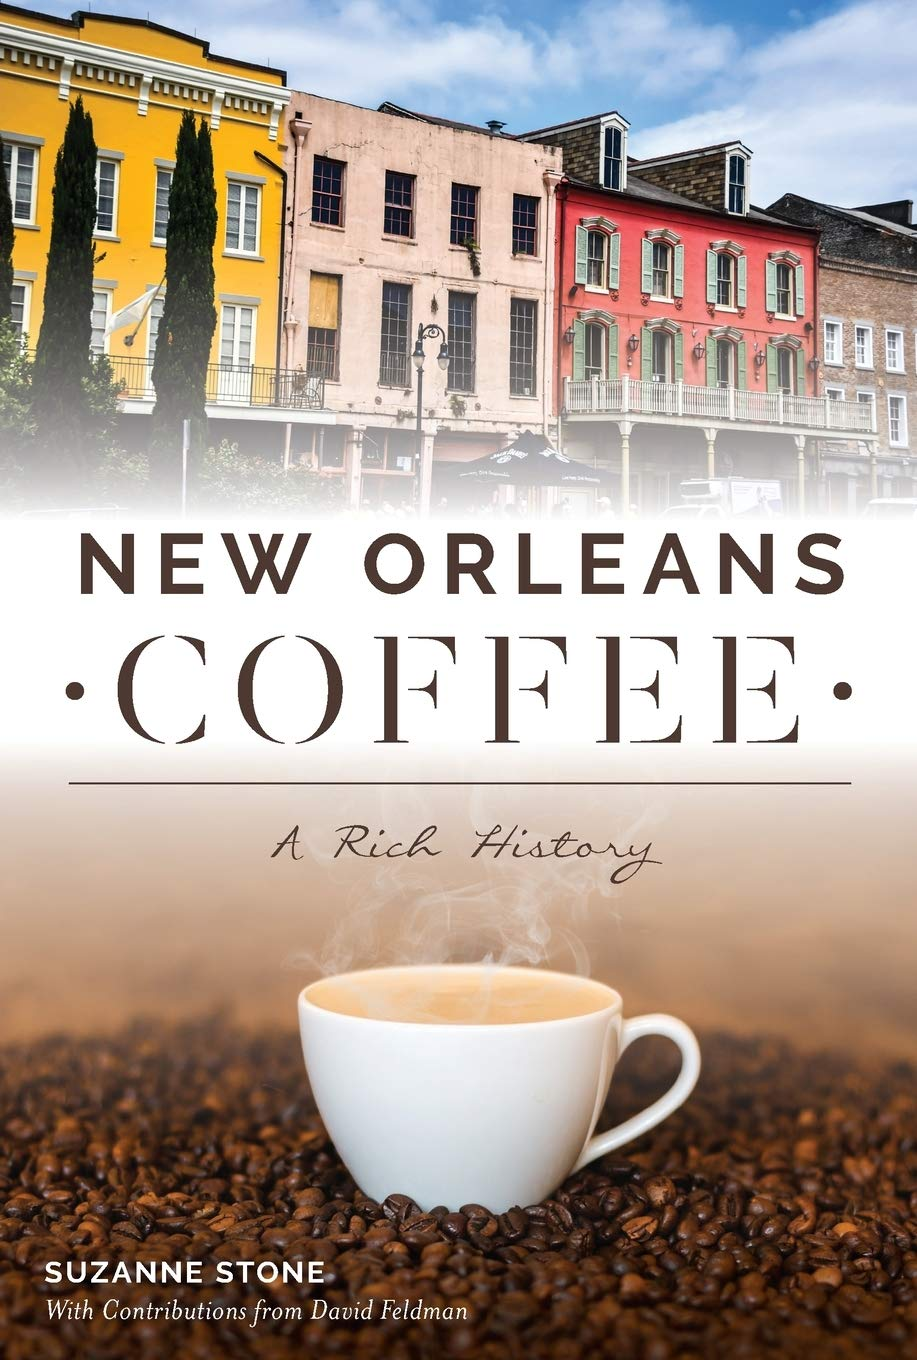 New Orleans Coffee: A Rich History